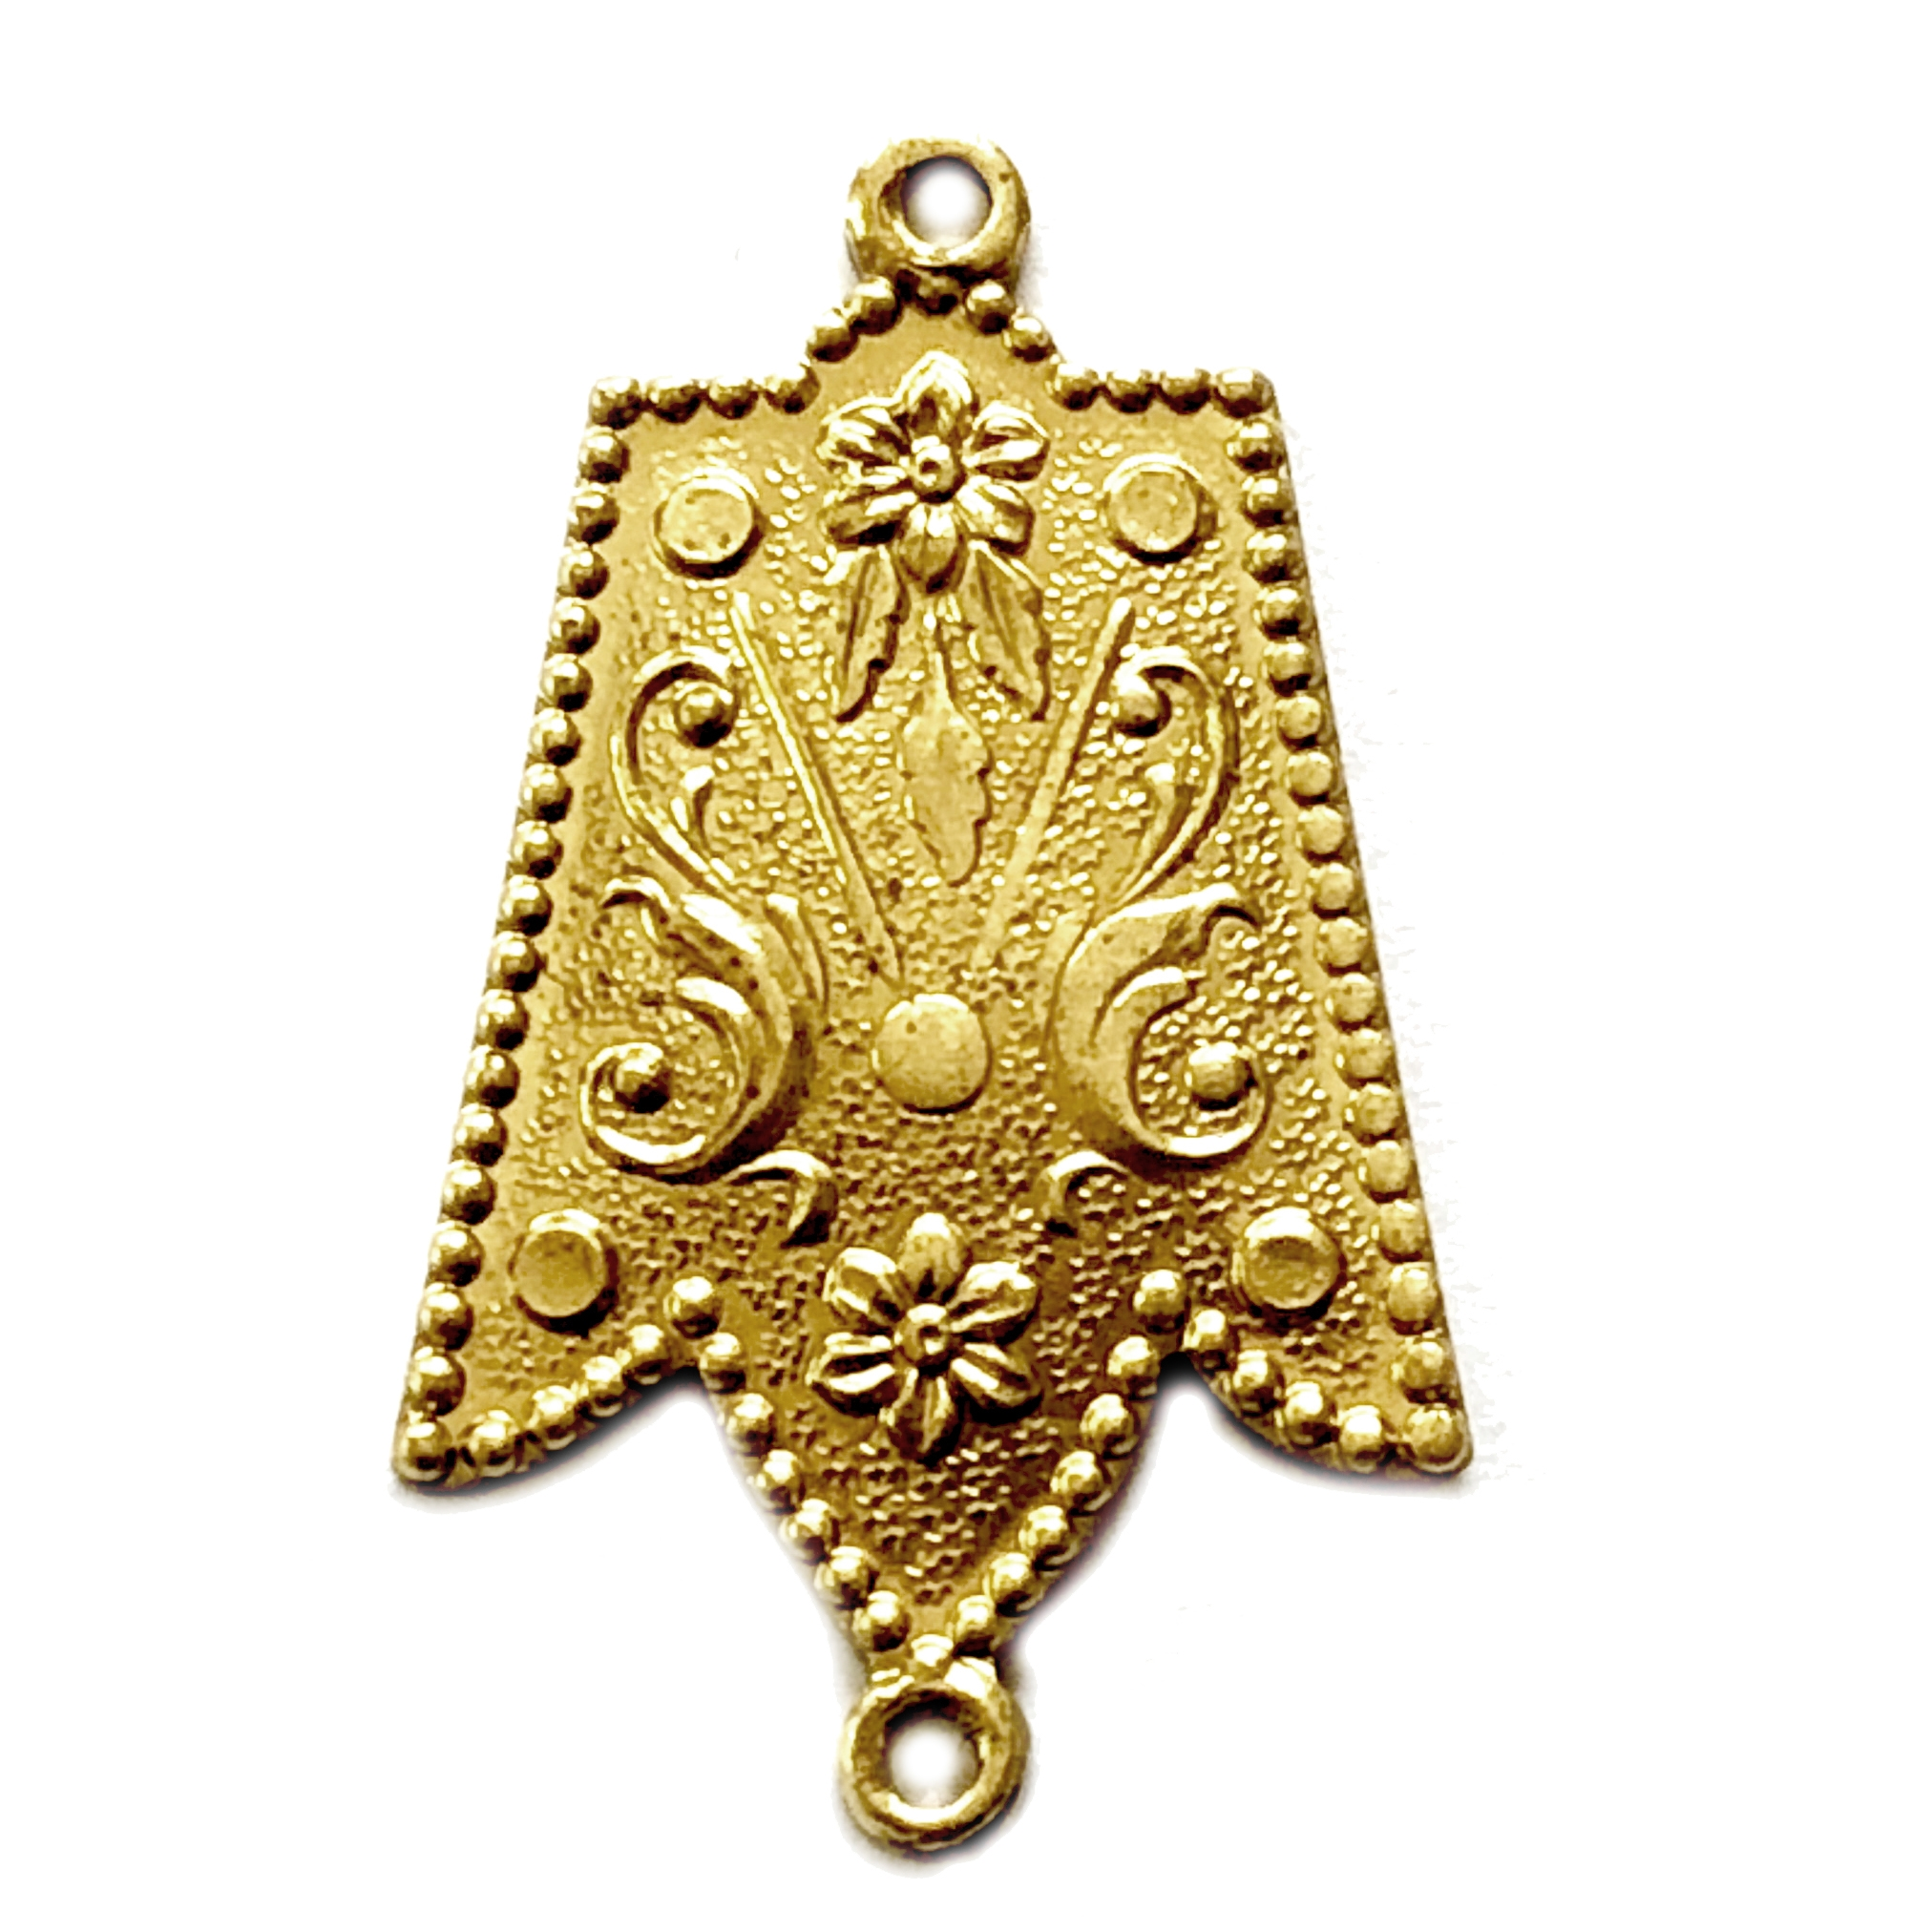 Brass Stampings, Jester Pendant, Raw Brass, 05127, jewelry making supplies, vintage jewelry supplies, brass pendants, brass charms, US made, nickel free, Bsue Boutiques, brass jewelry parts, brass connectors